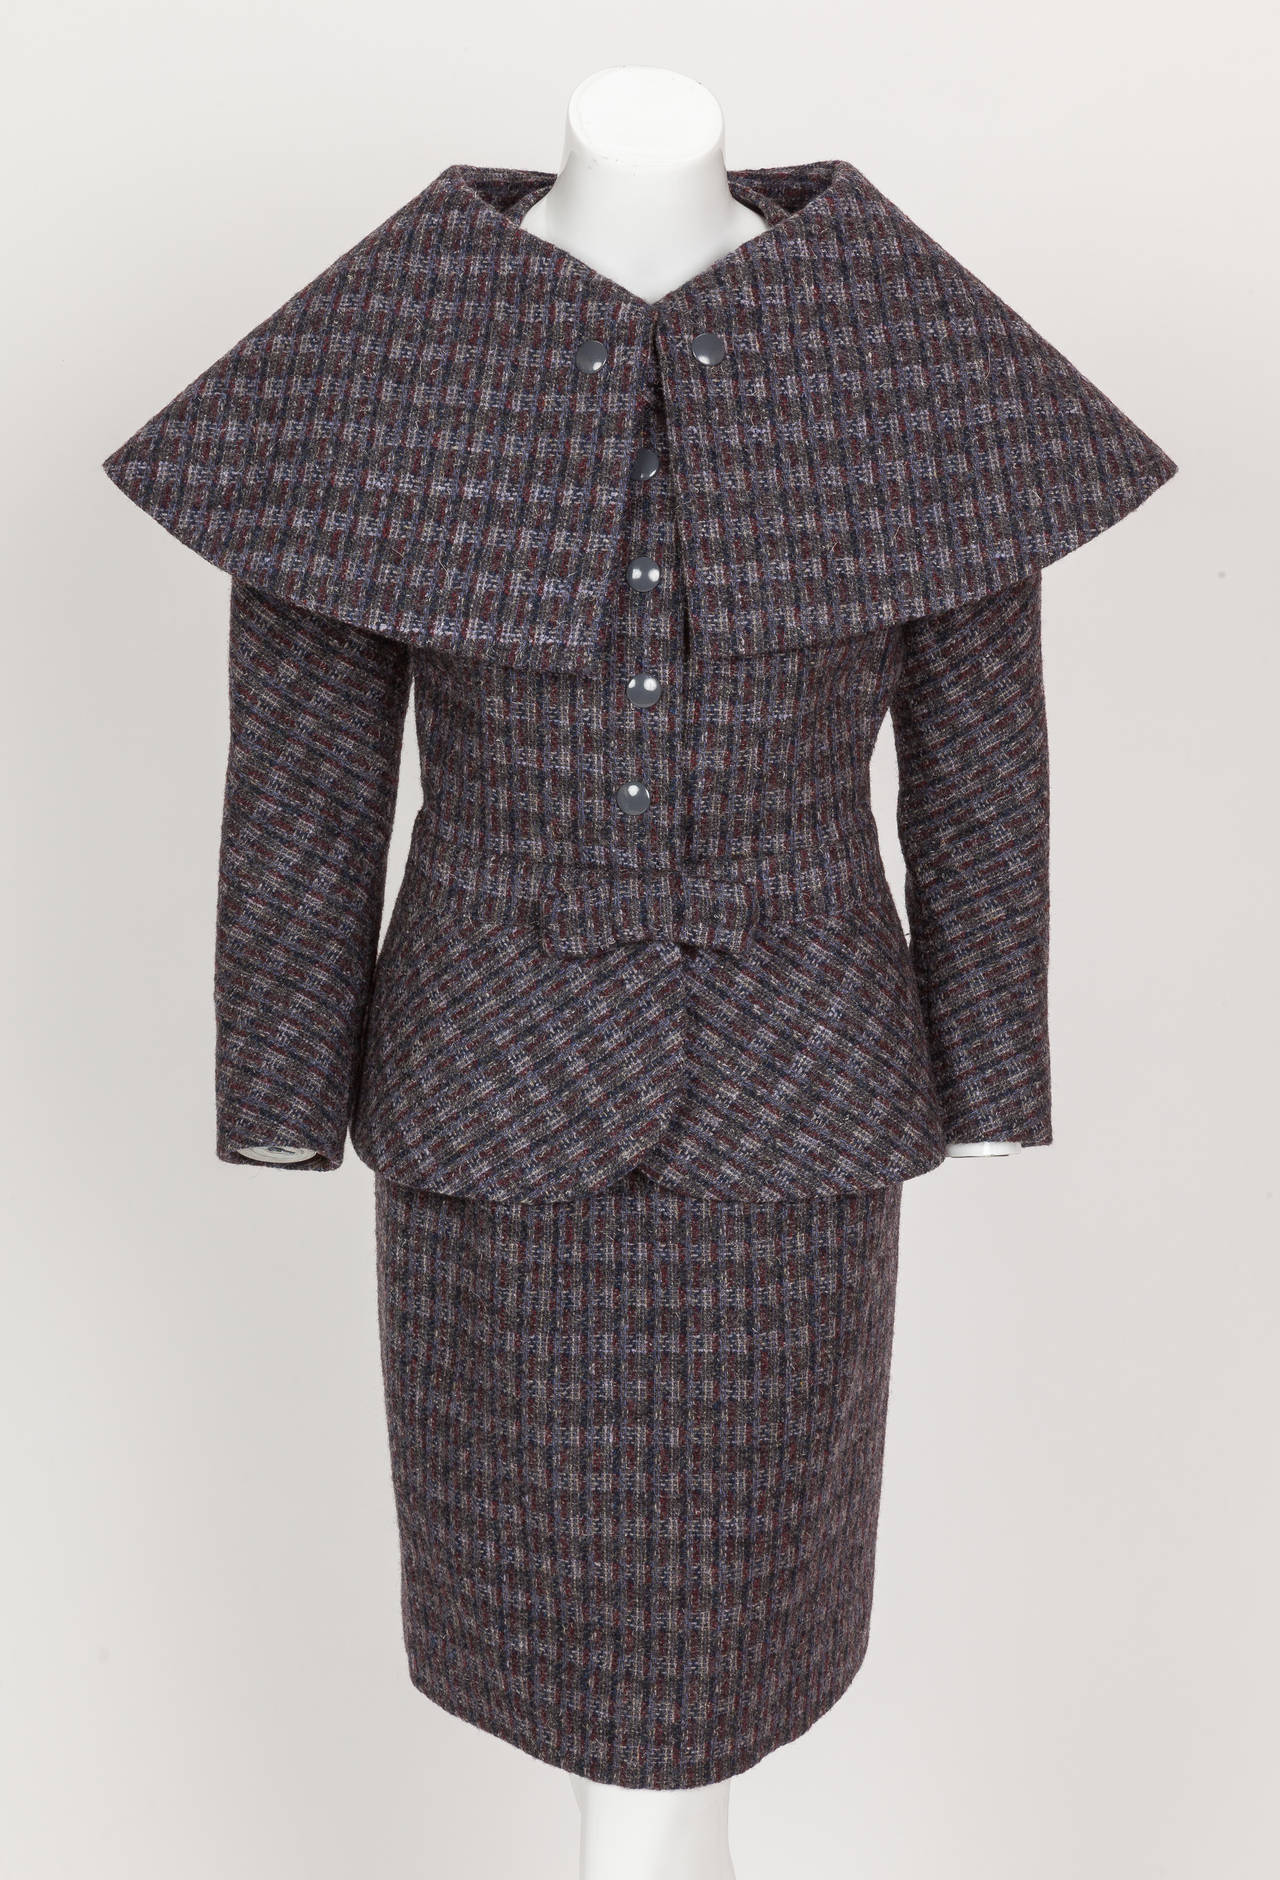 Pierre Cardin Tweed Jacket and Skirt Ensemble Suit w/Detachable collar ca. 1982 2